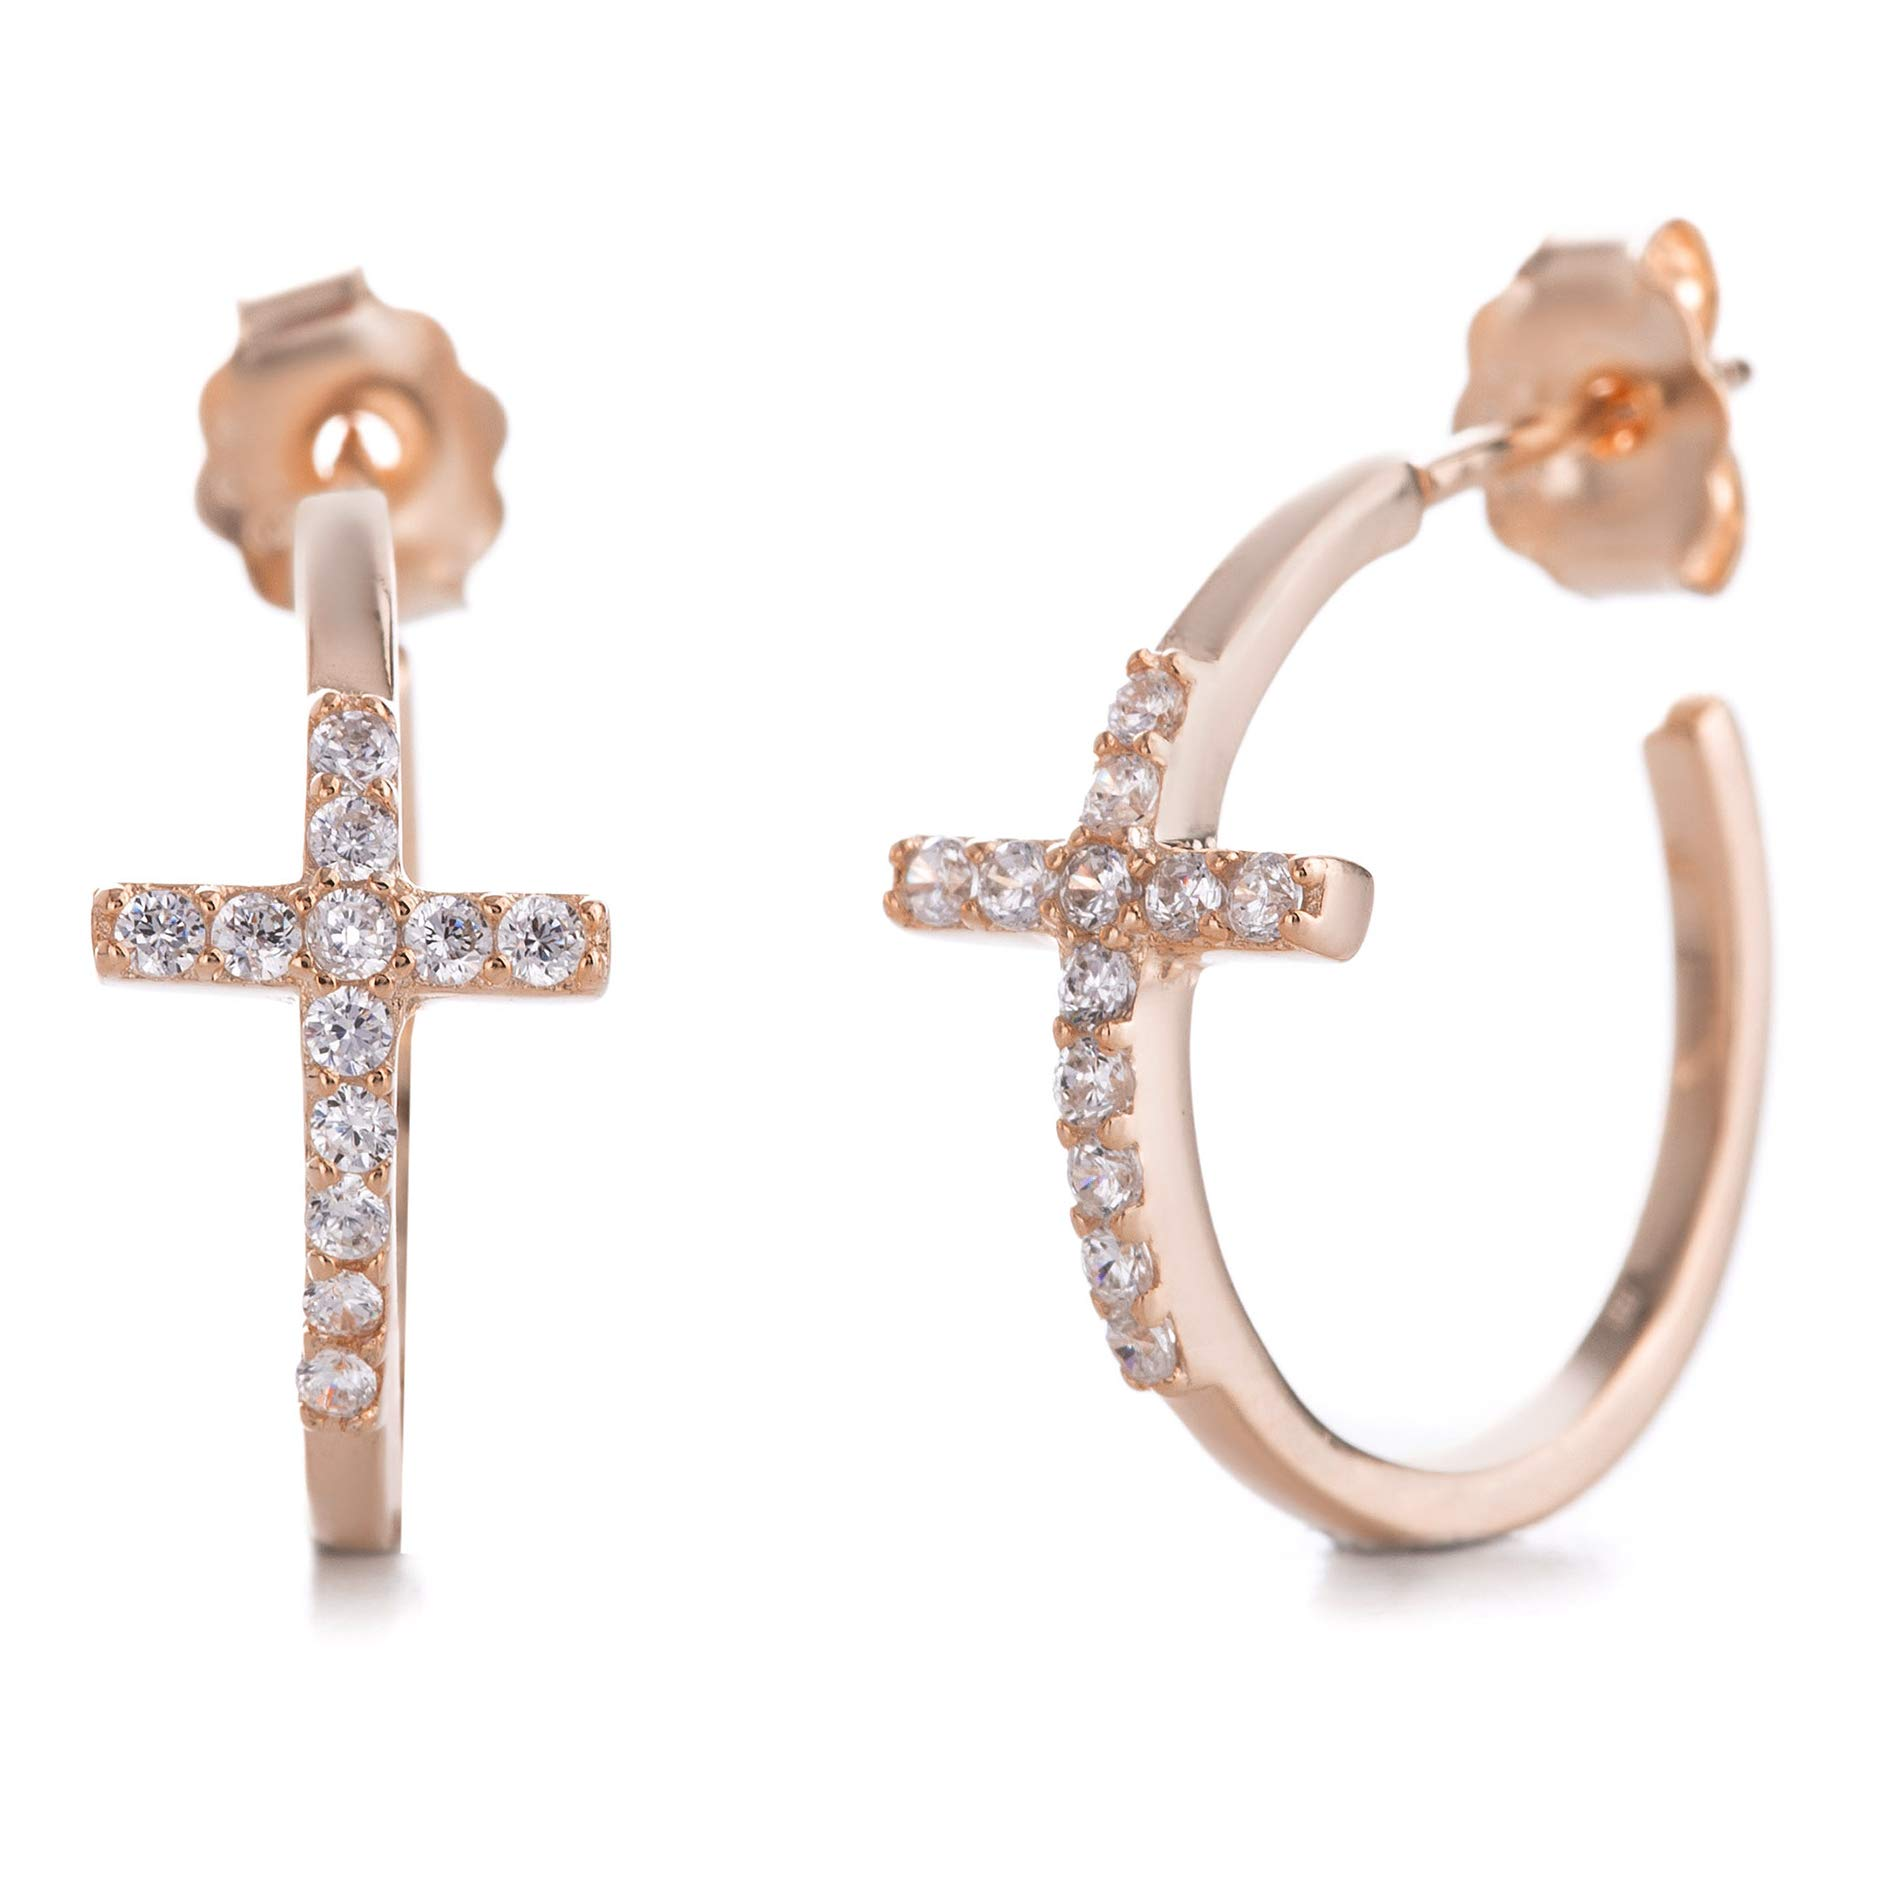 MIA SARINE Sterling Silver Cubic Zirconia Small Cross Hoop Earrings for Women with Post and Nut Backs (Various Colors)